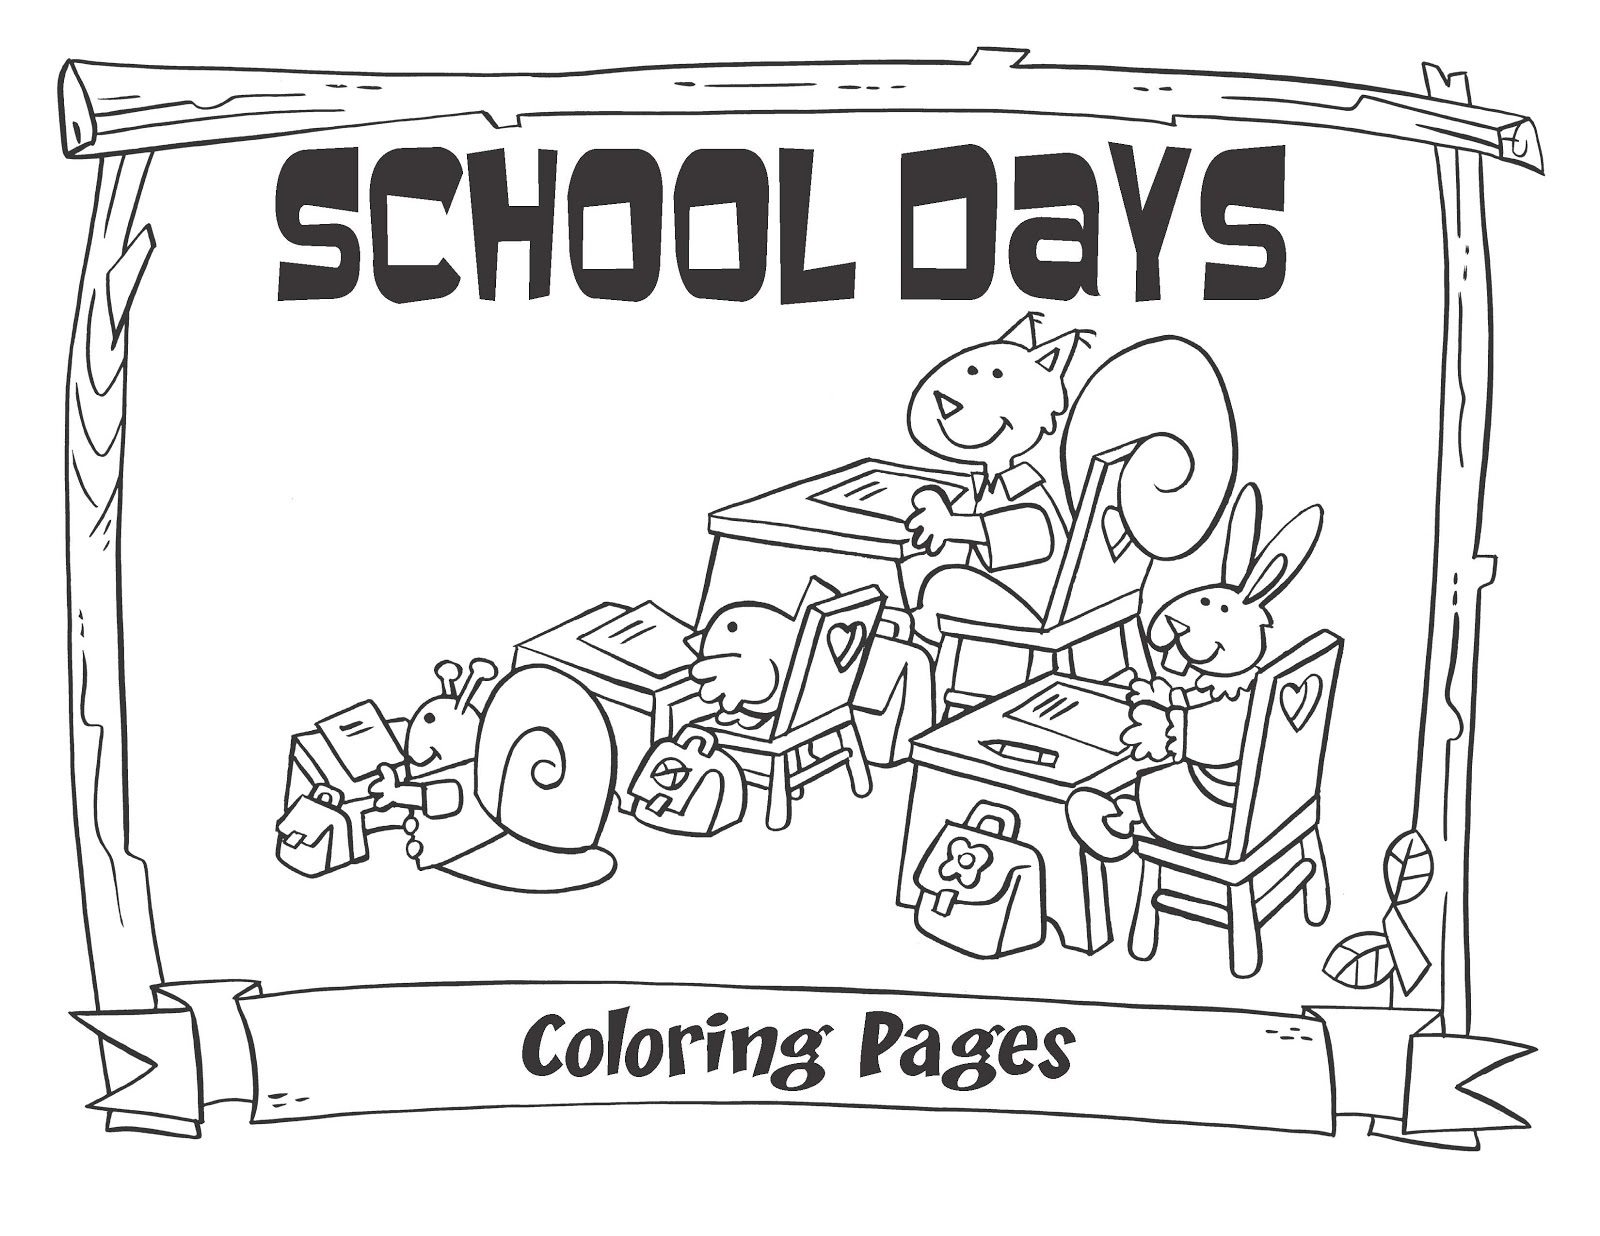 last-day-of-school-coloring-pages-4.